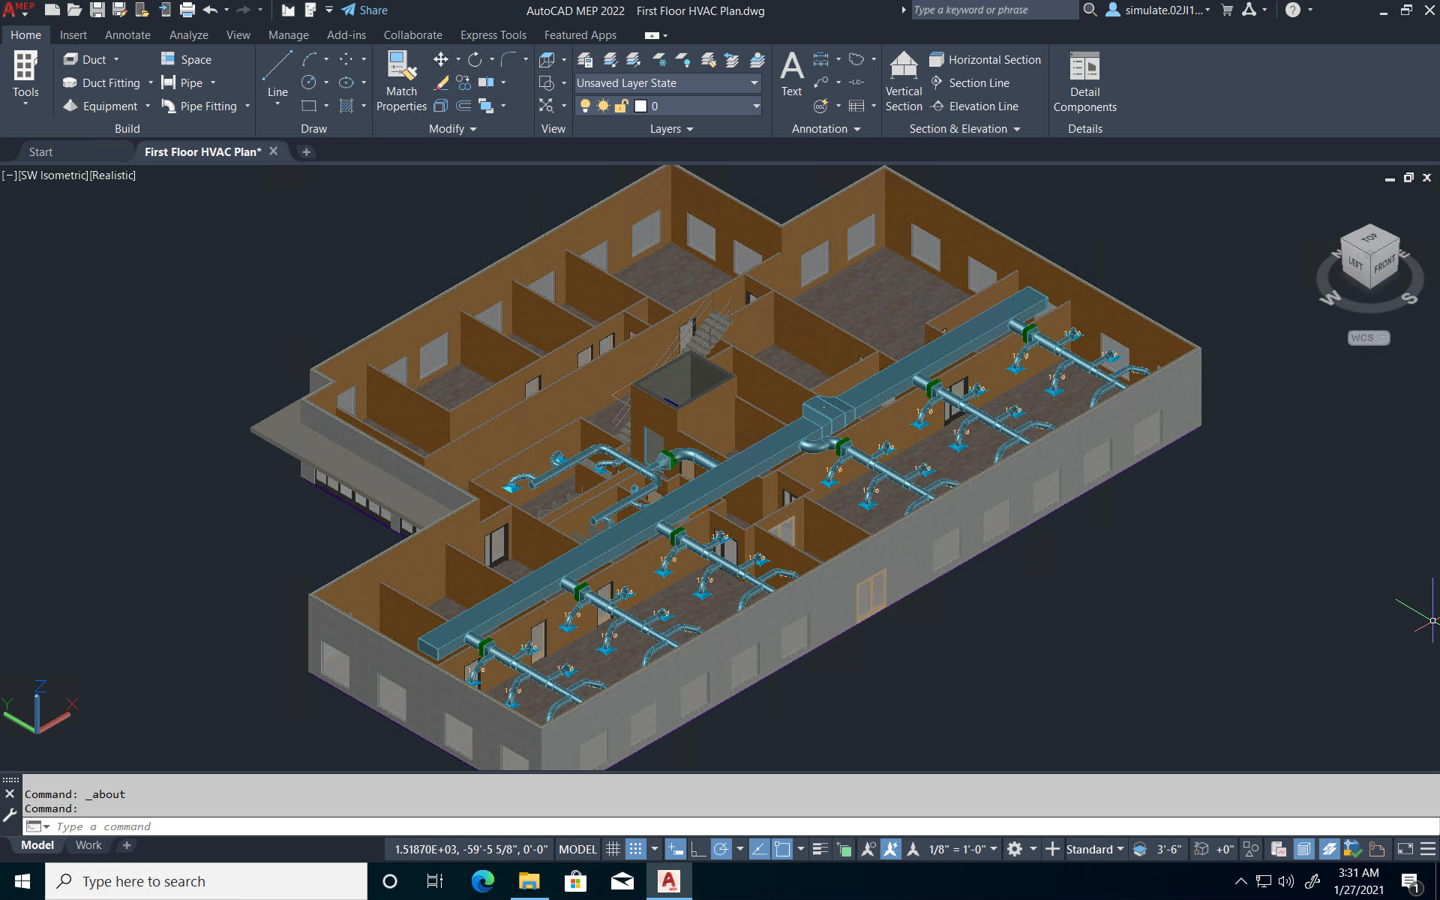 autocad-specialized-toolset-2021-8a